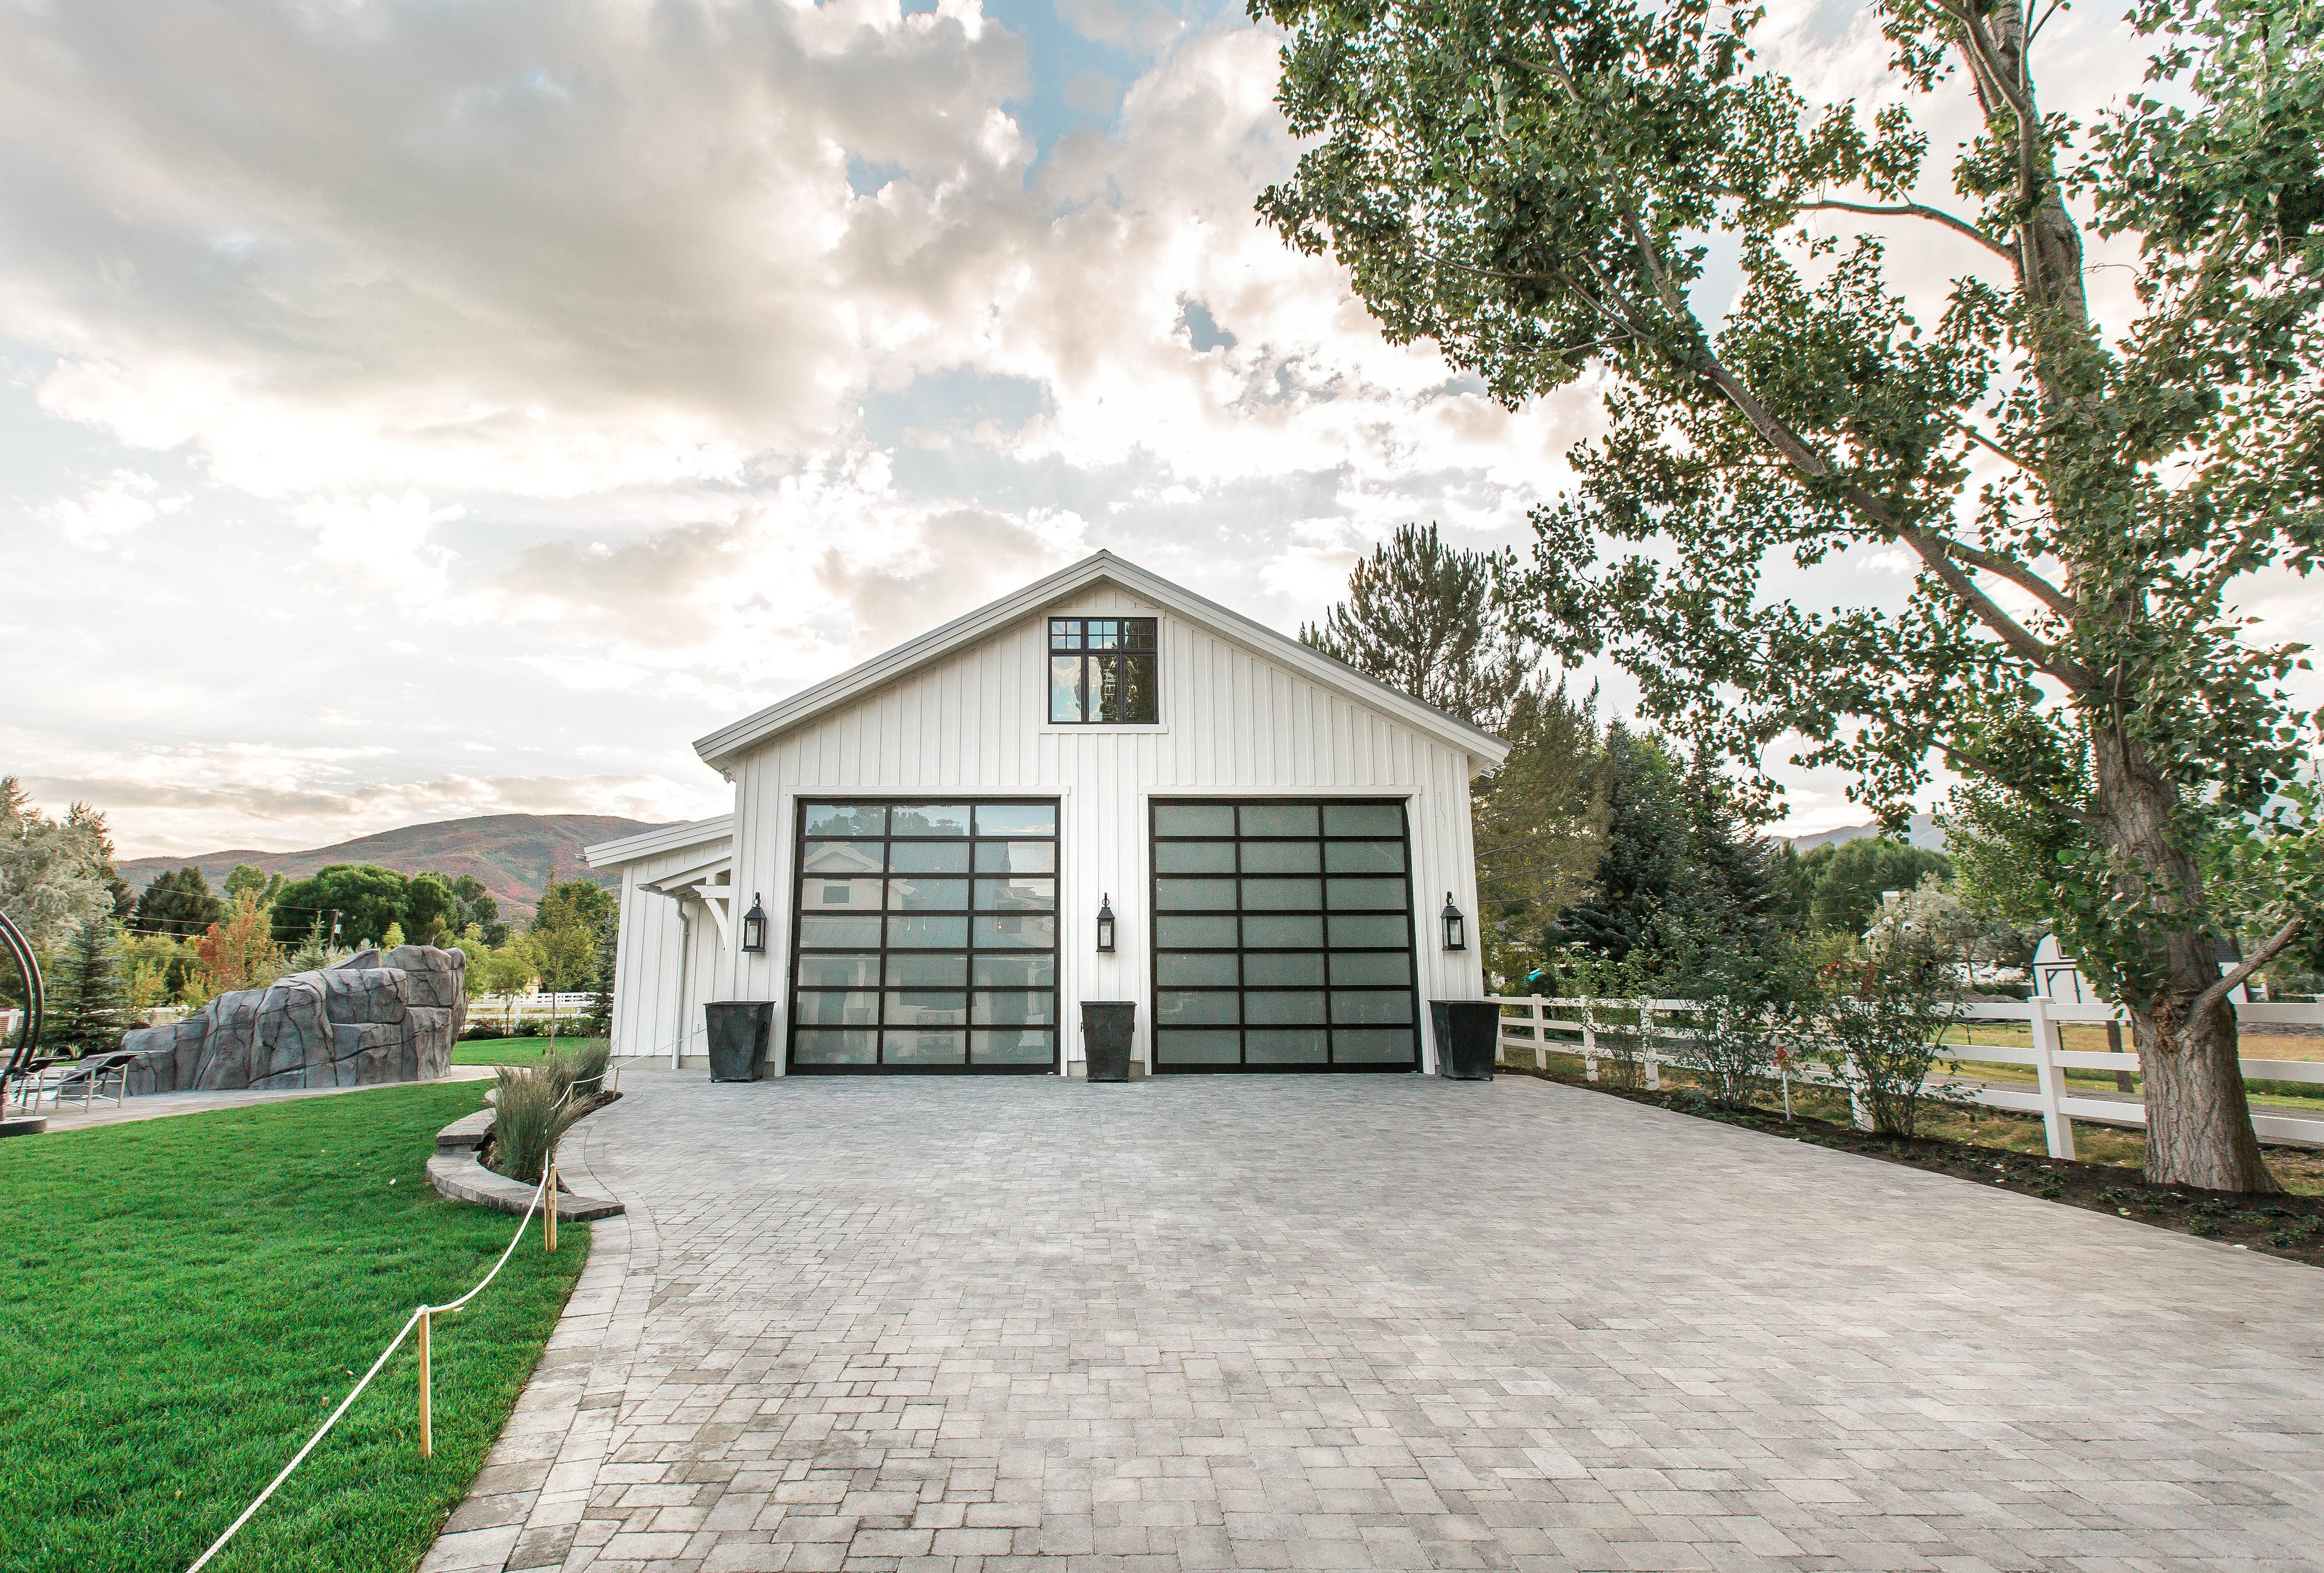 best modern custom home builders. Lane Myers Construction is a premier Utah custom home builder specializing  in luxury homes Dream For Luxury Homes Then contact at Timberidge Custom